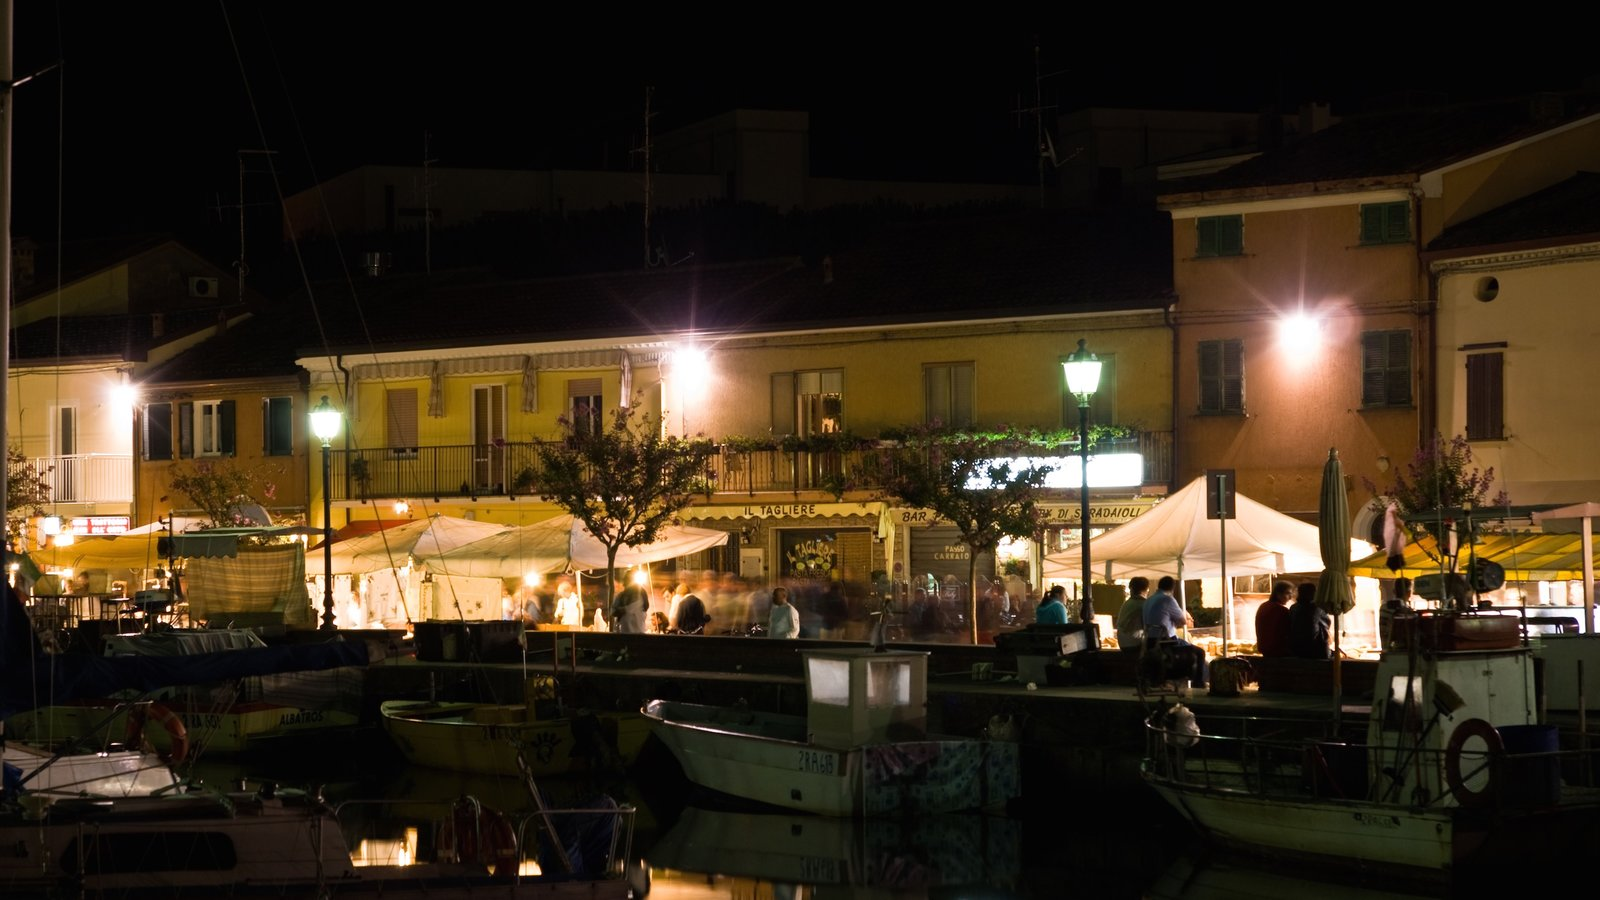 Cervia showing a marina, night scenes and outdoor eating